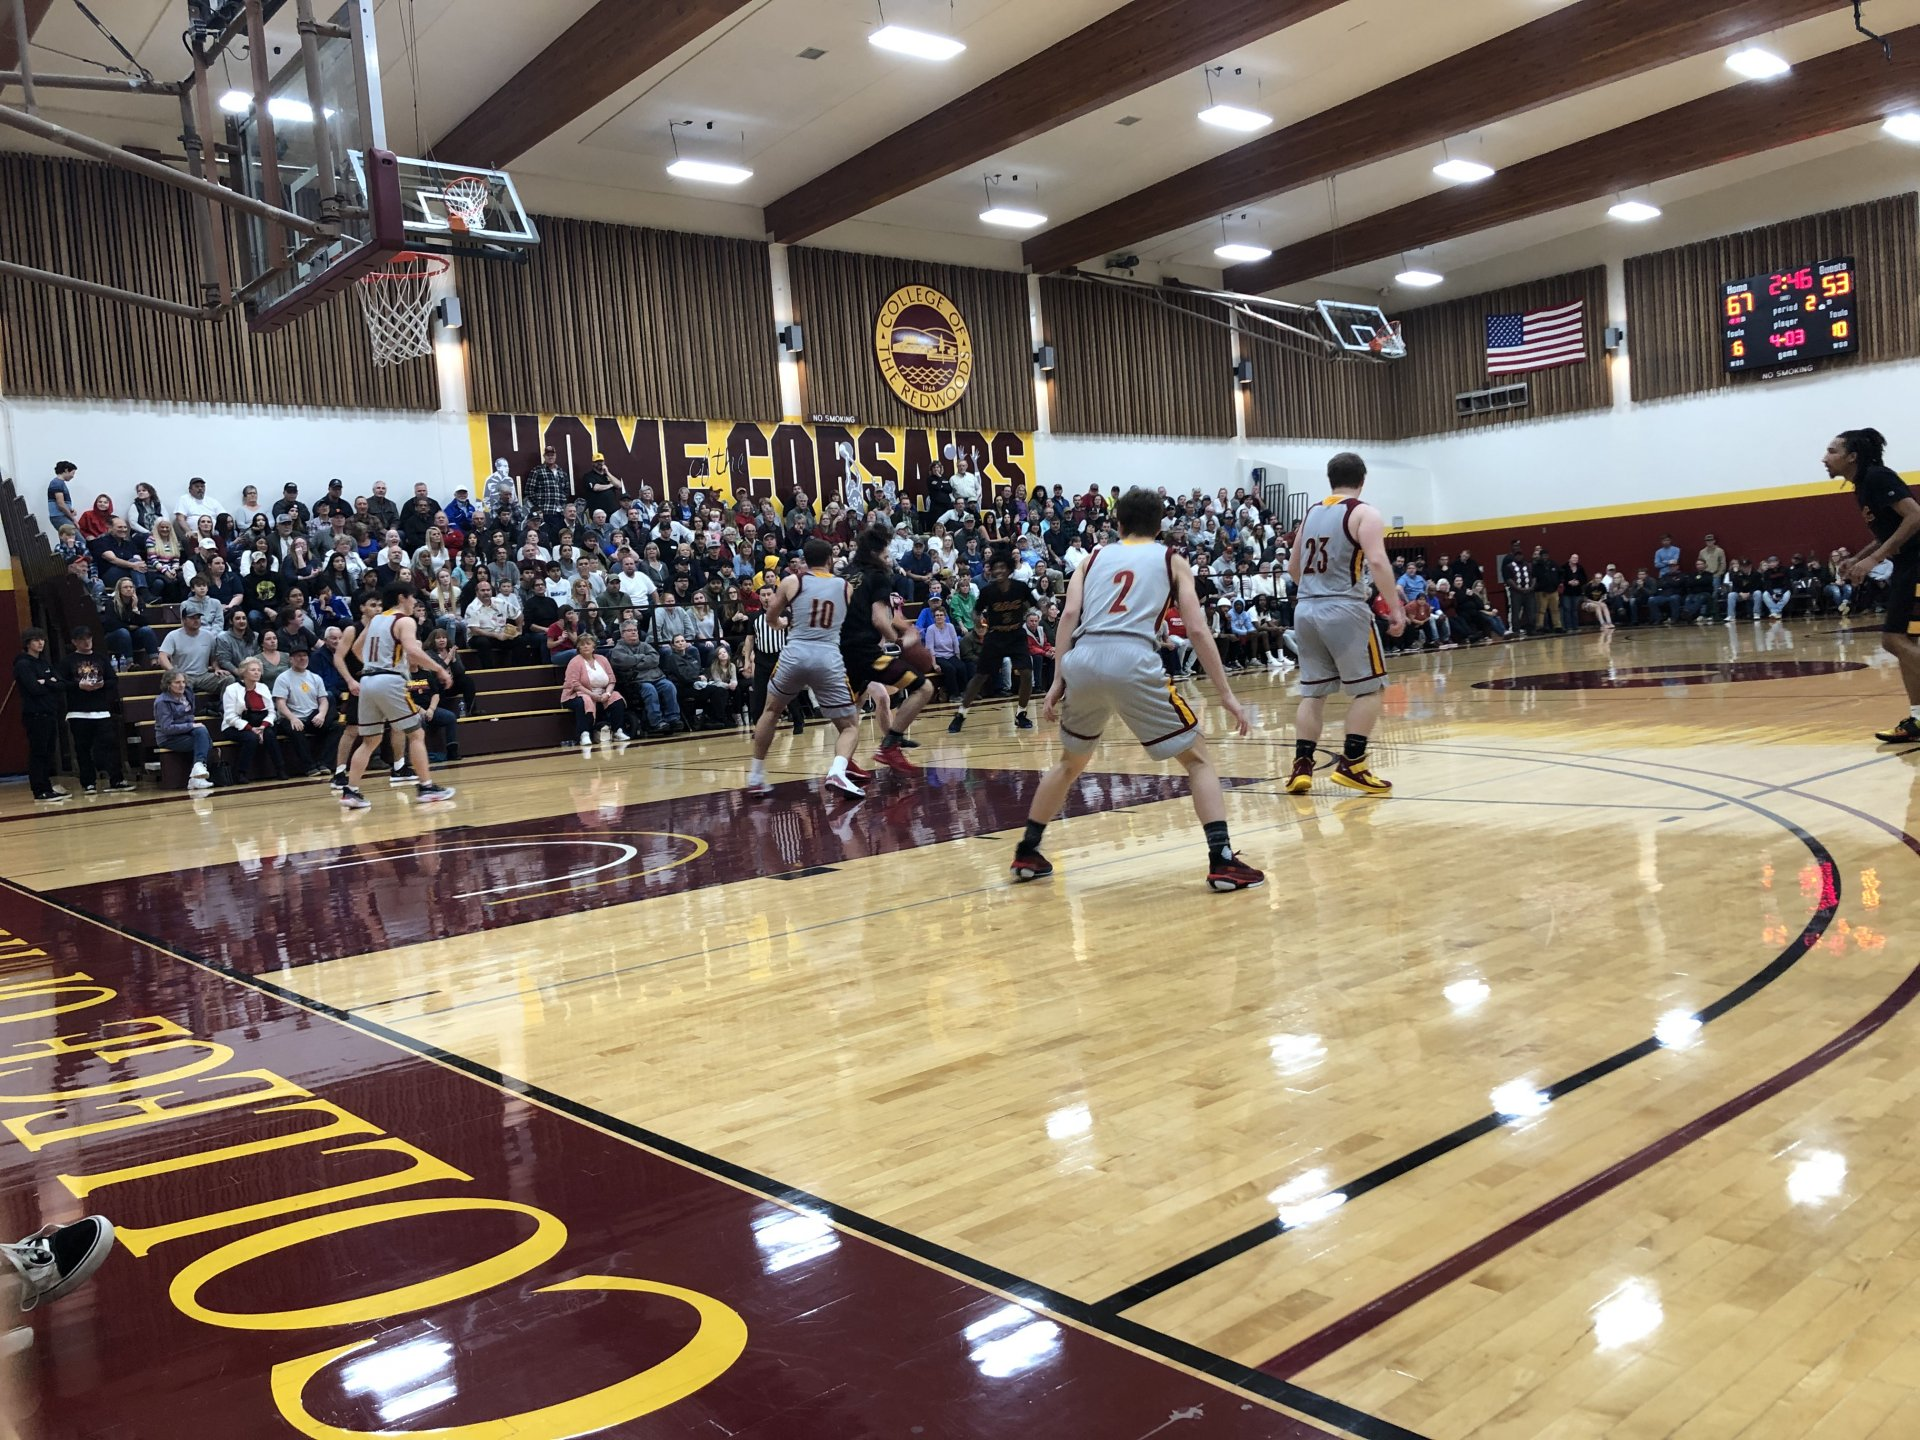 Corsairs defend against Sacramento City College in the first round of the CCCAA State Playoffs in front of sold-out home crowd. | Photo by Deion Alston